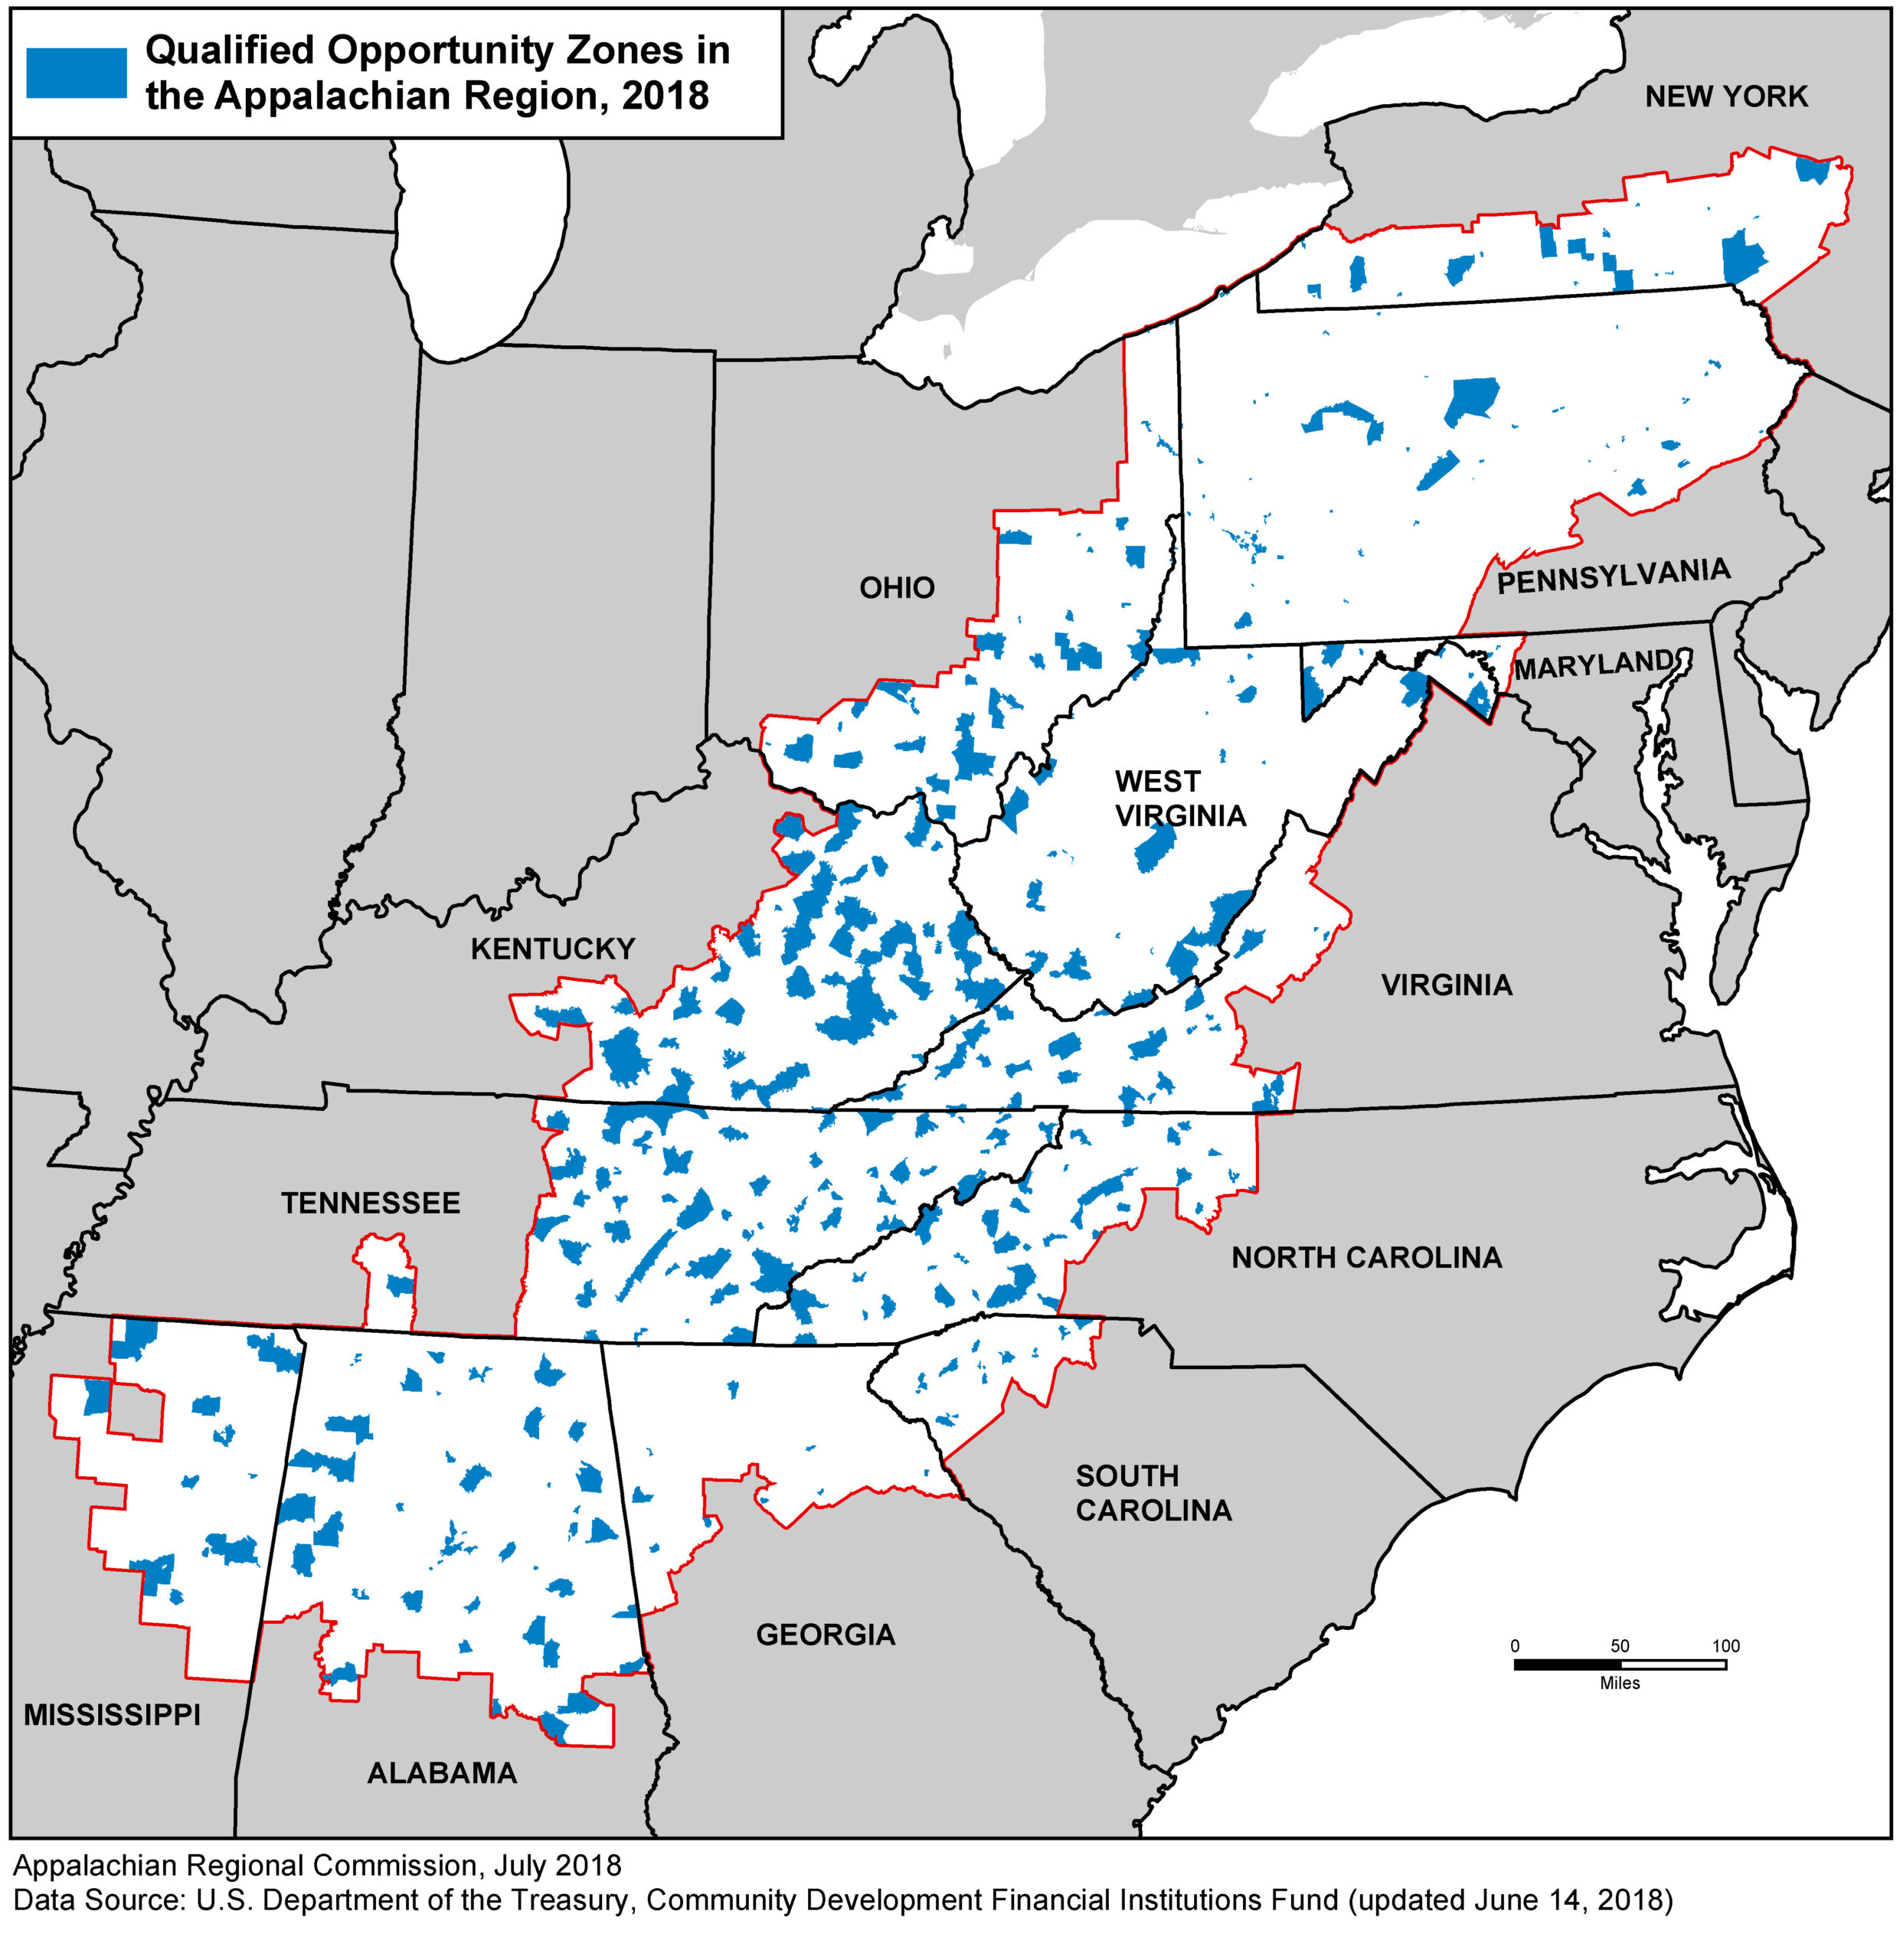 Map of Opportunity Zones in Appalachia, 2018